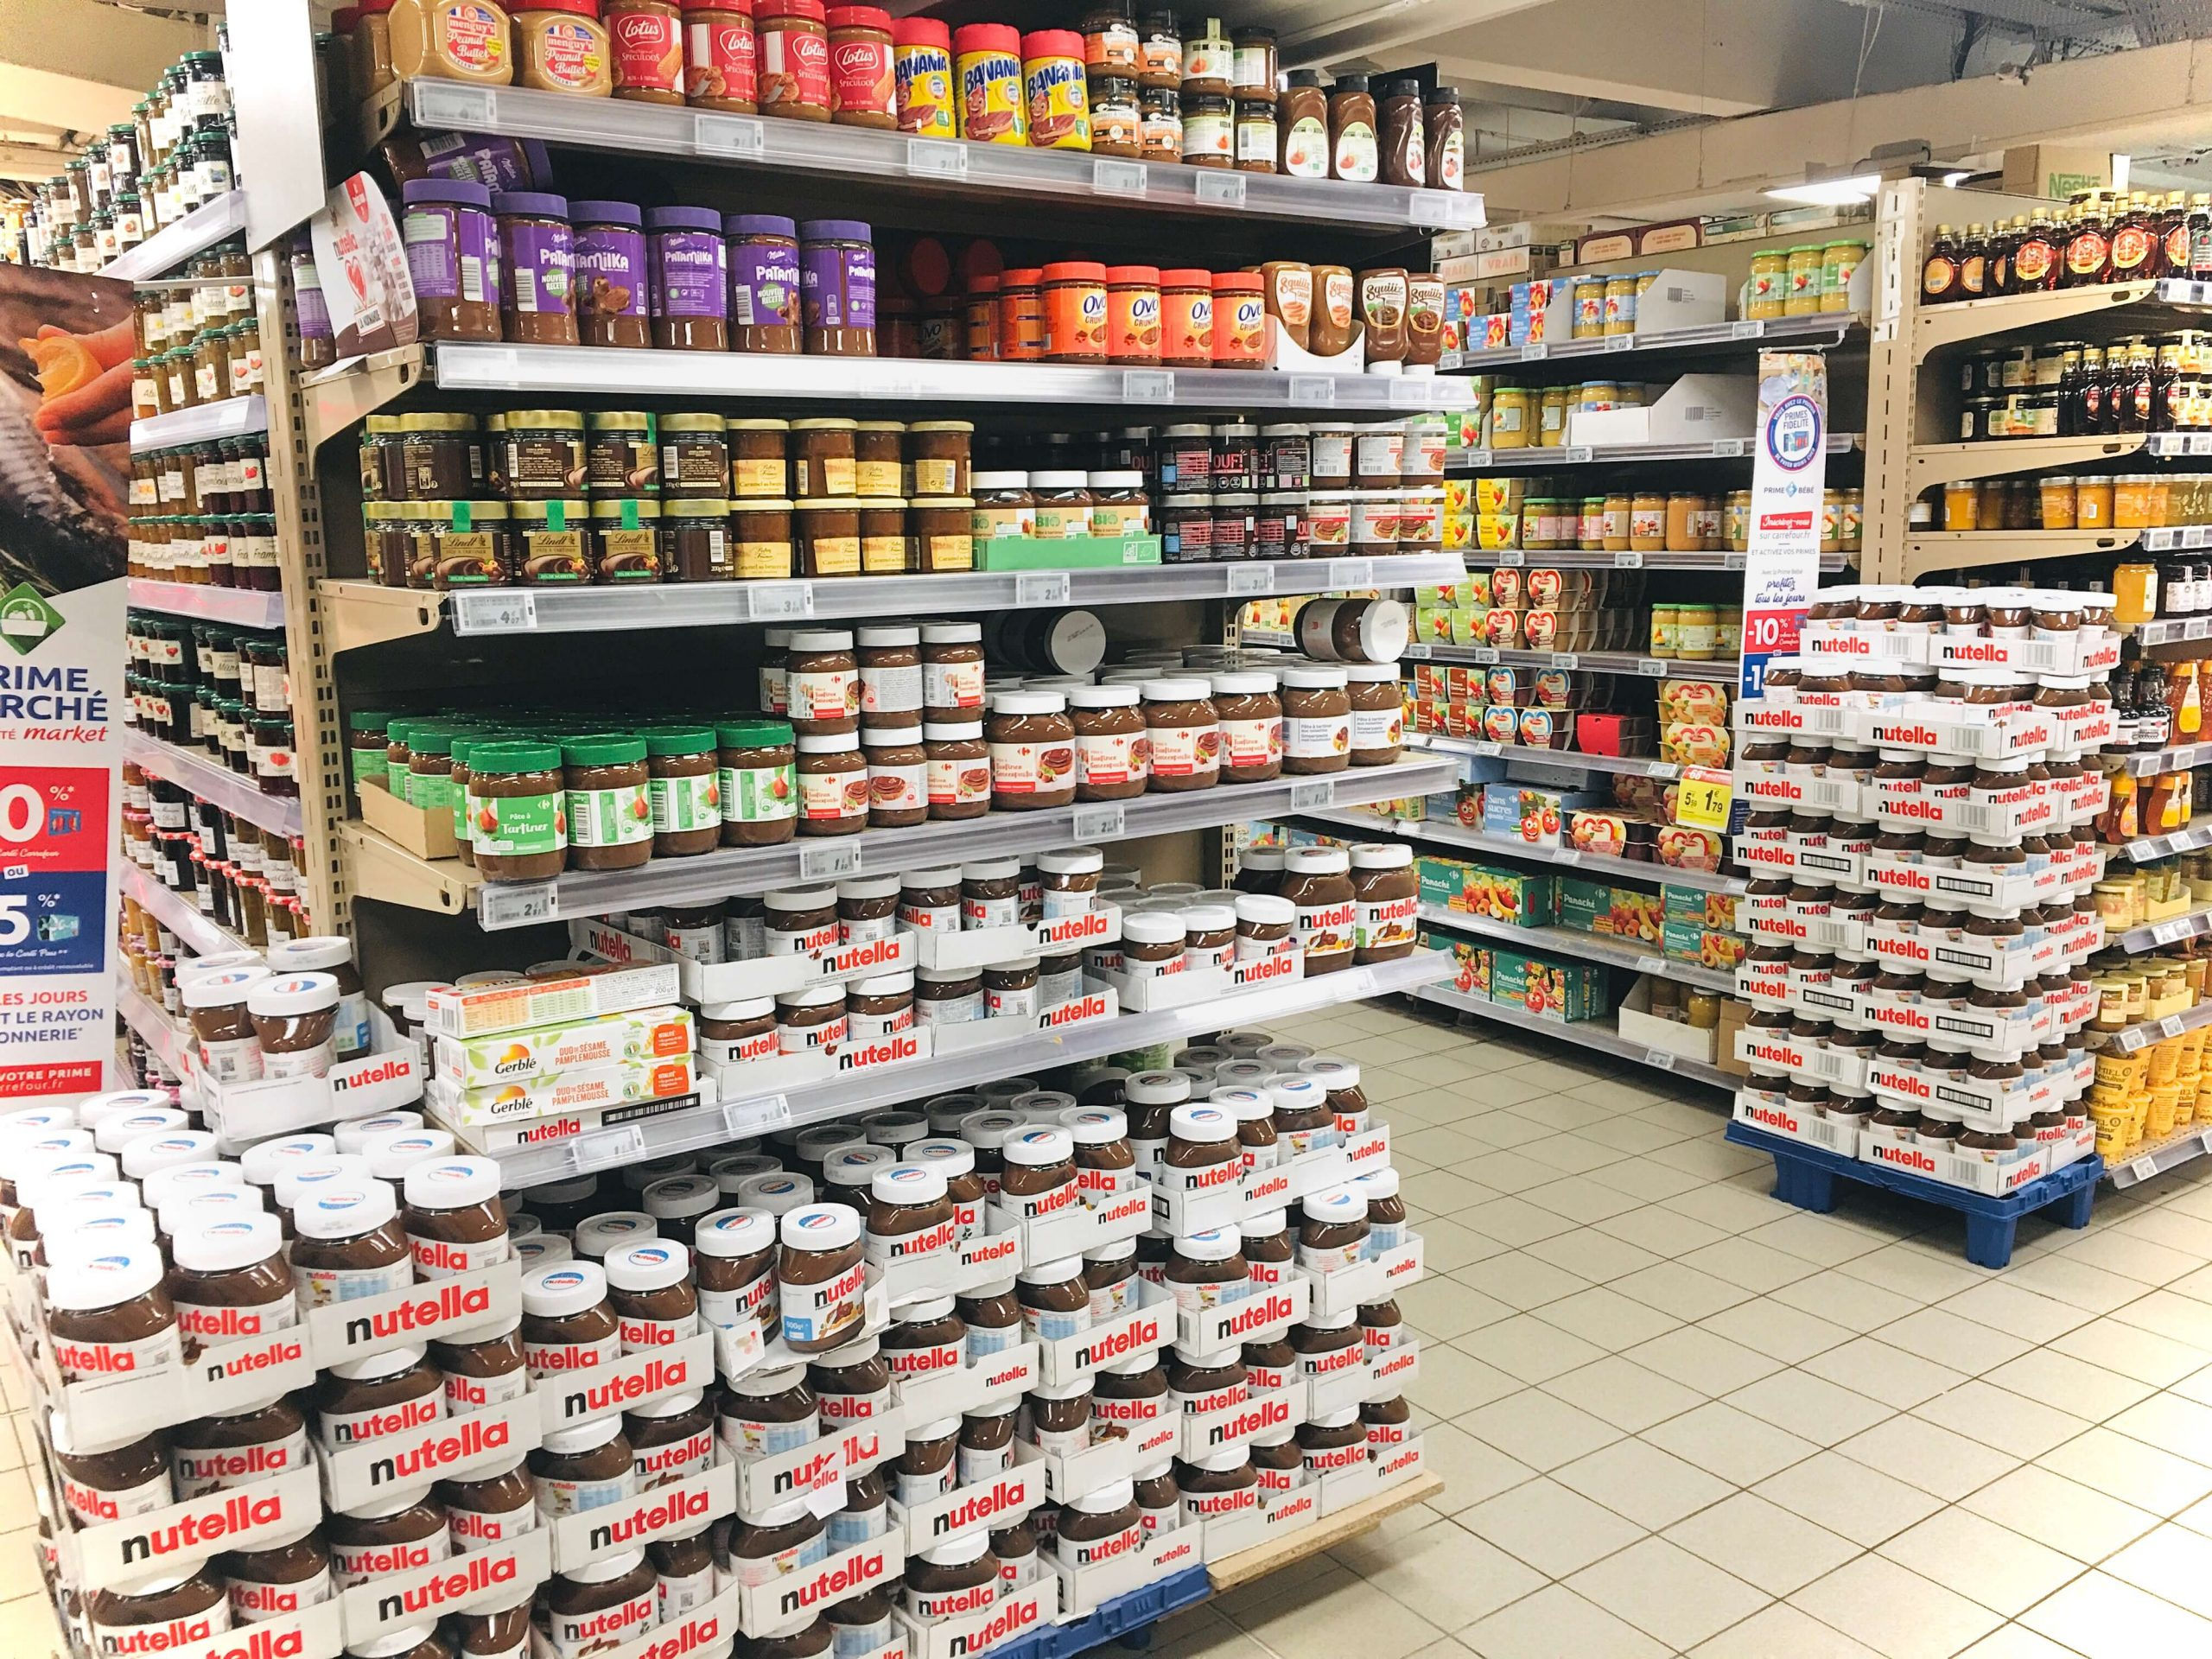 Many jars of pate a tartiner on shelves at the grocery store